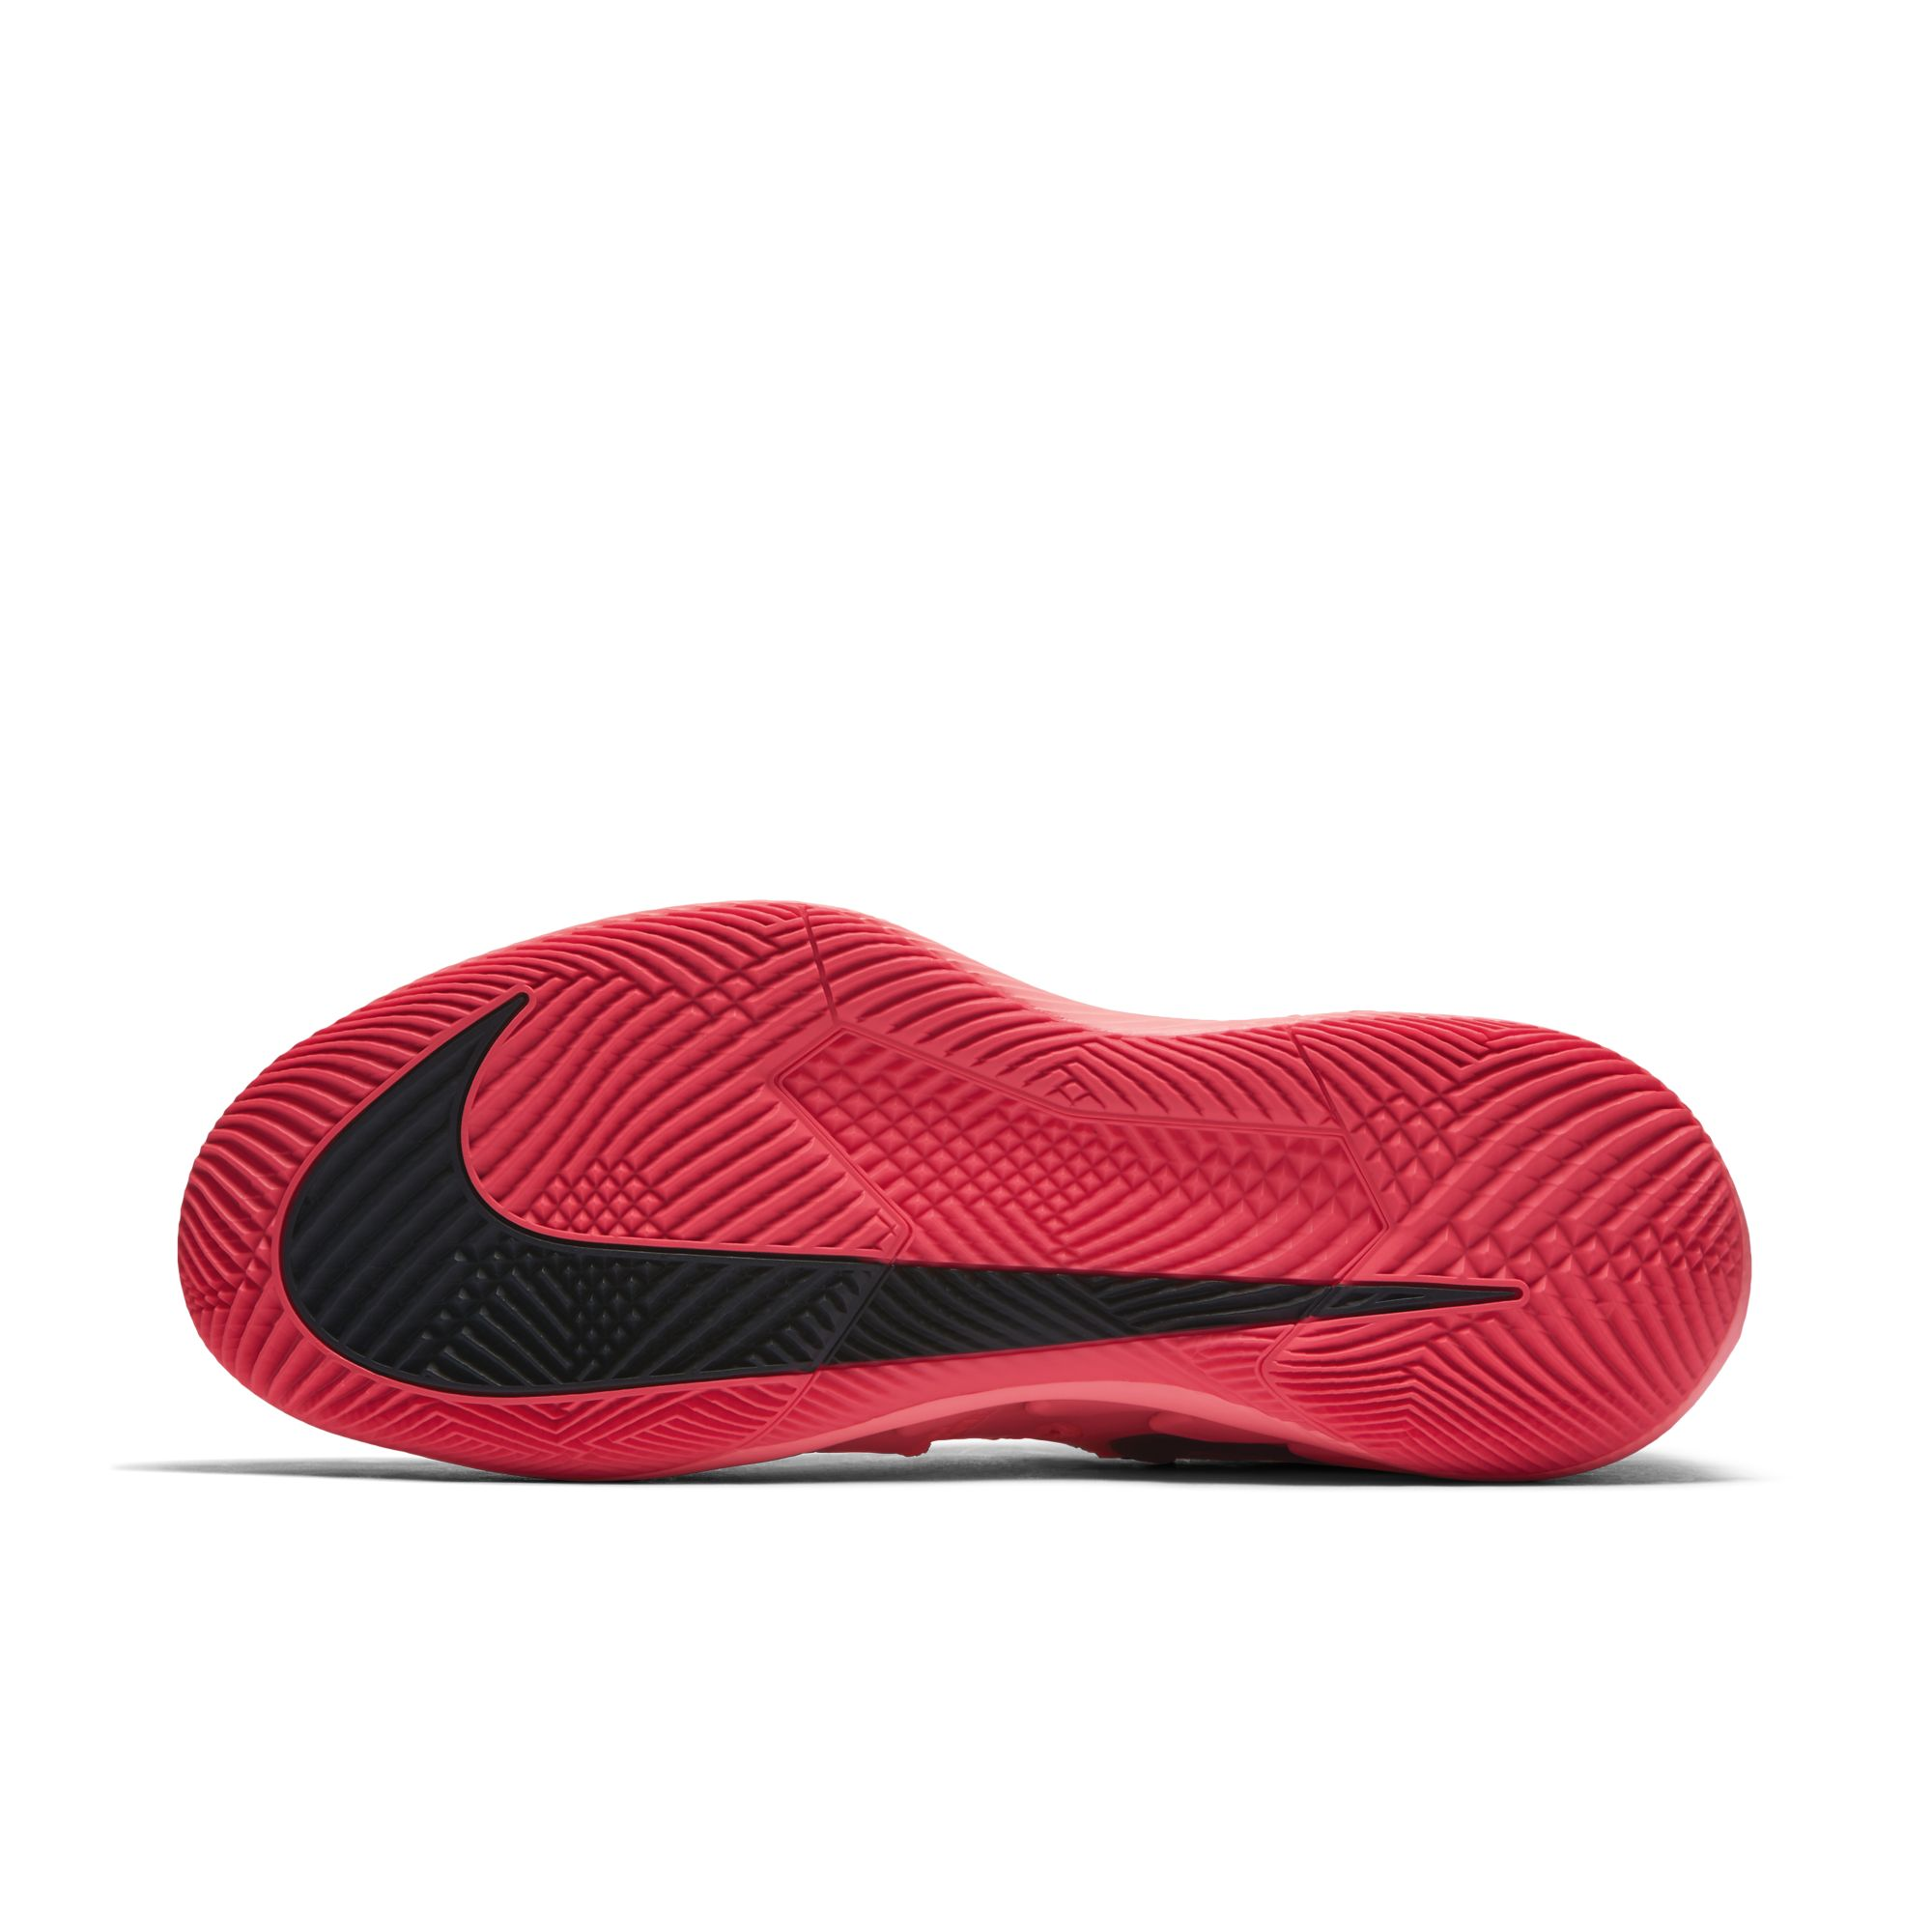 roger federer nike air zoom vapor x solar red 6